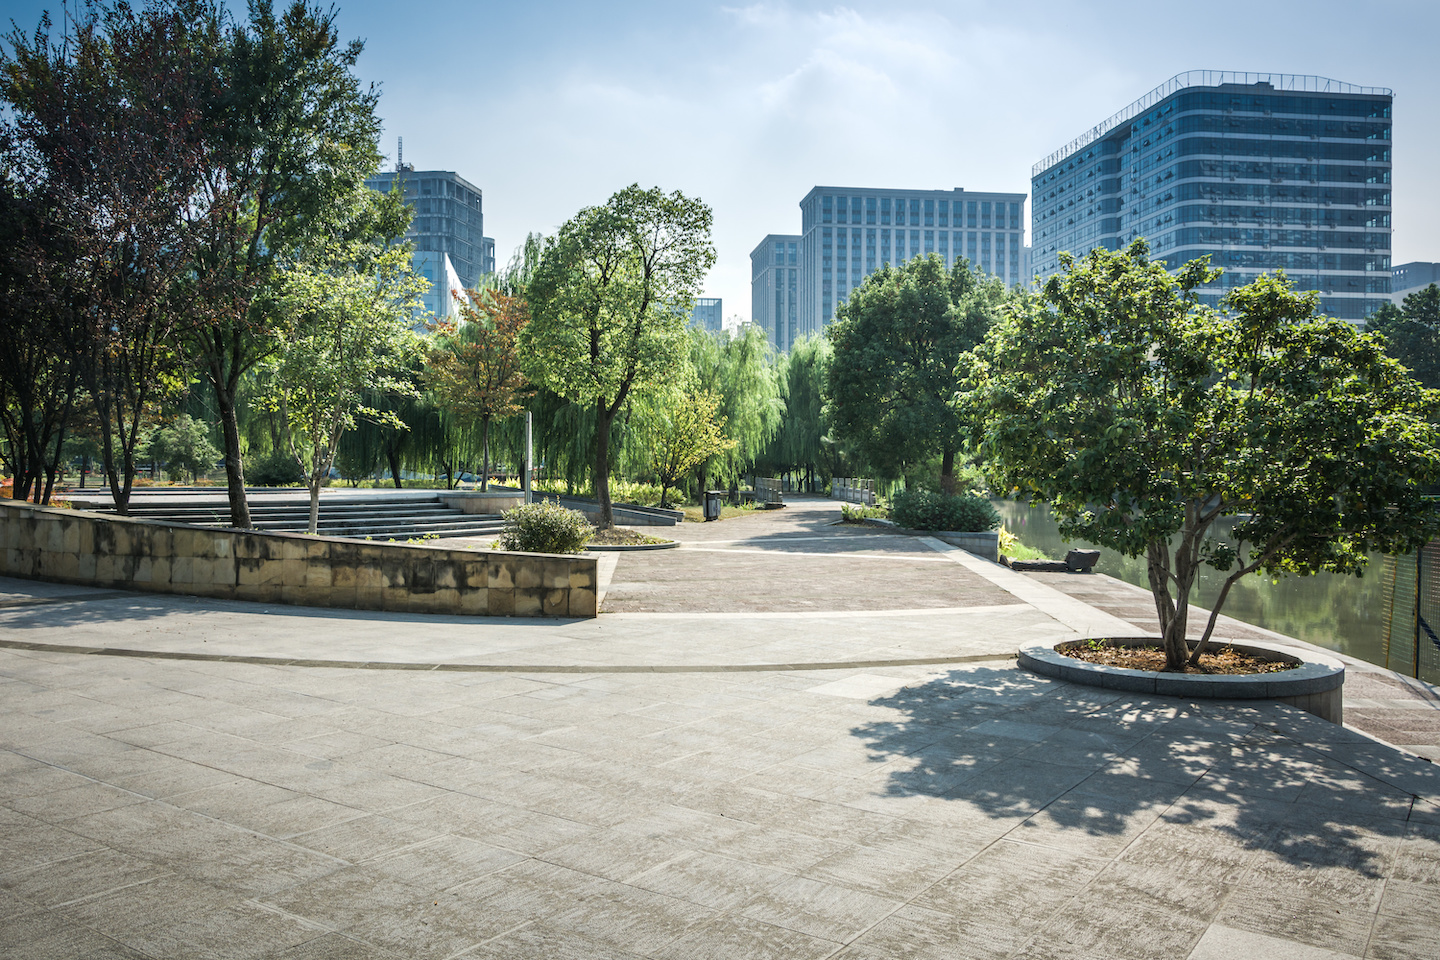 city plaza with trees